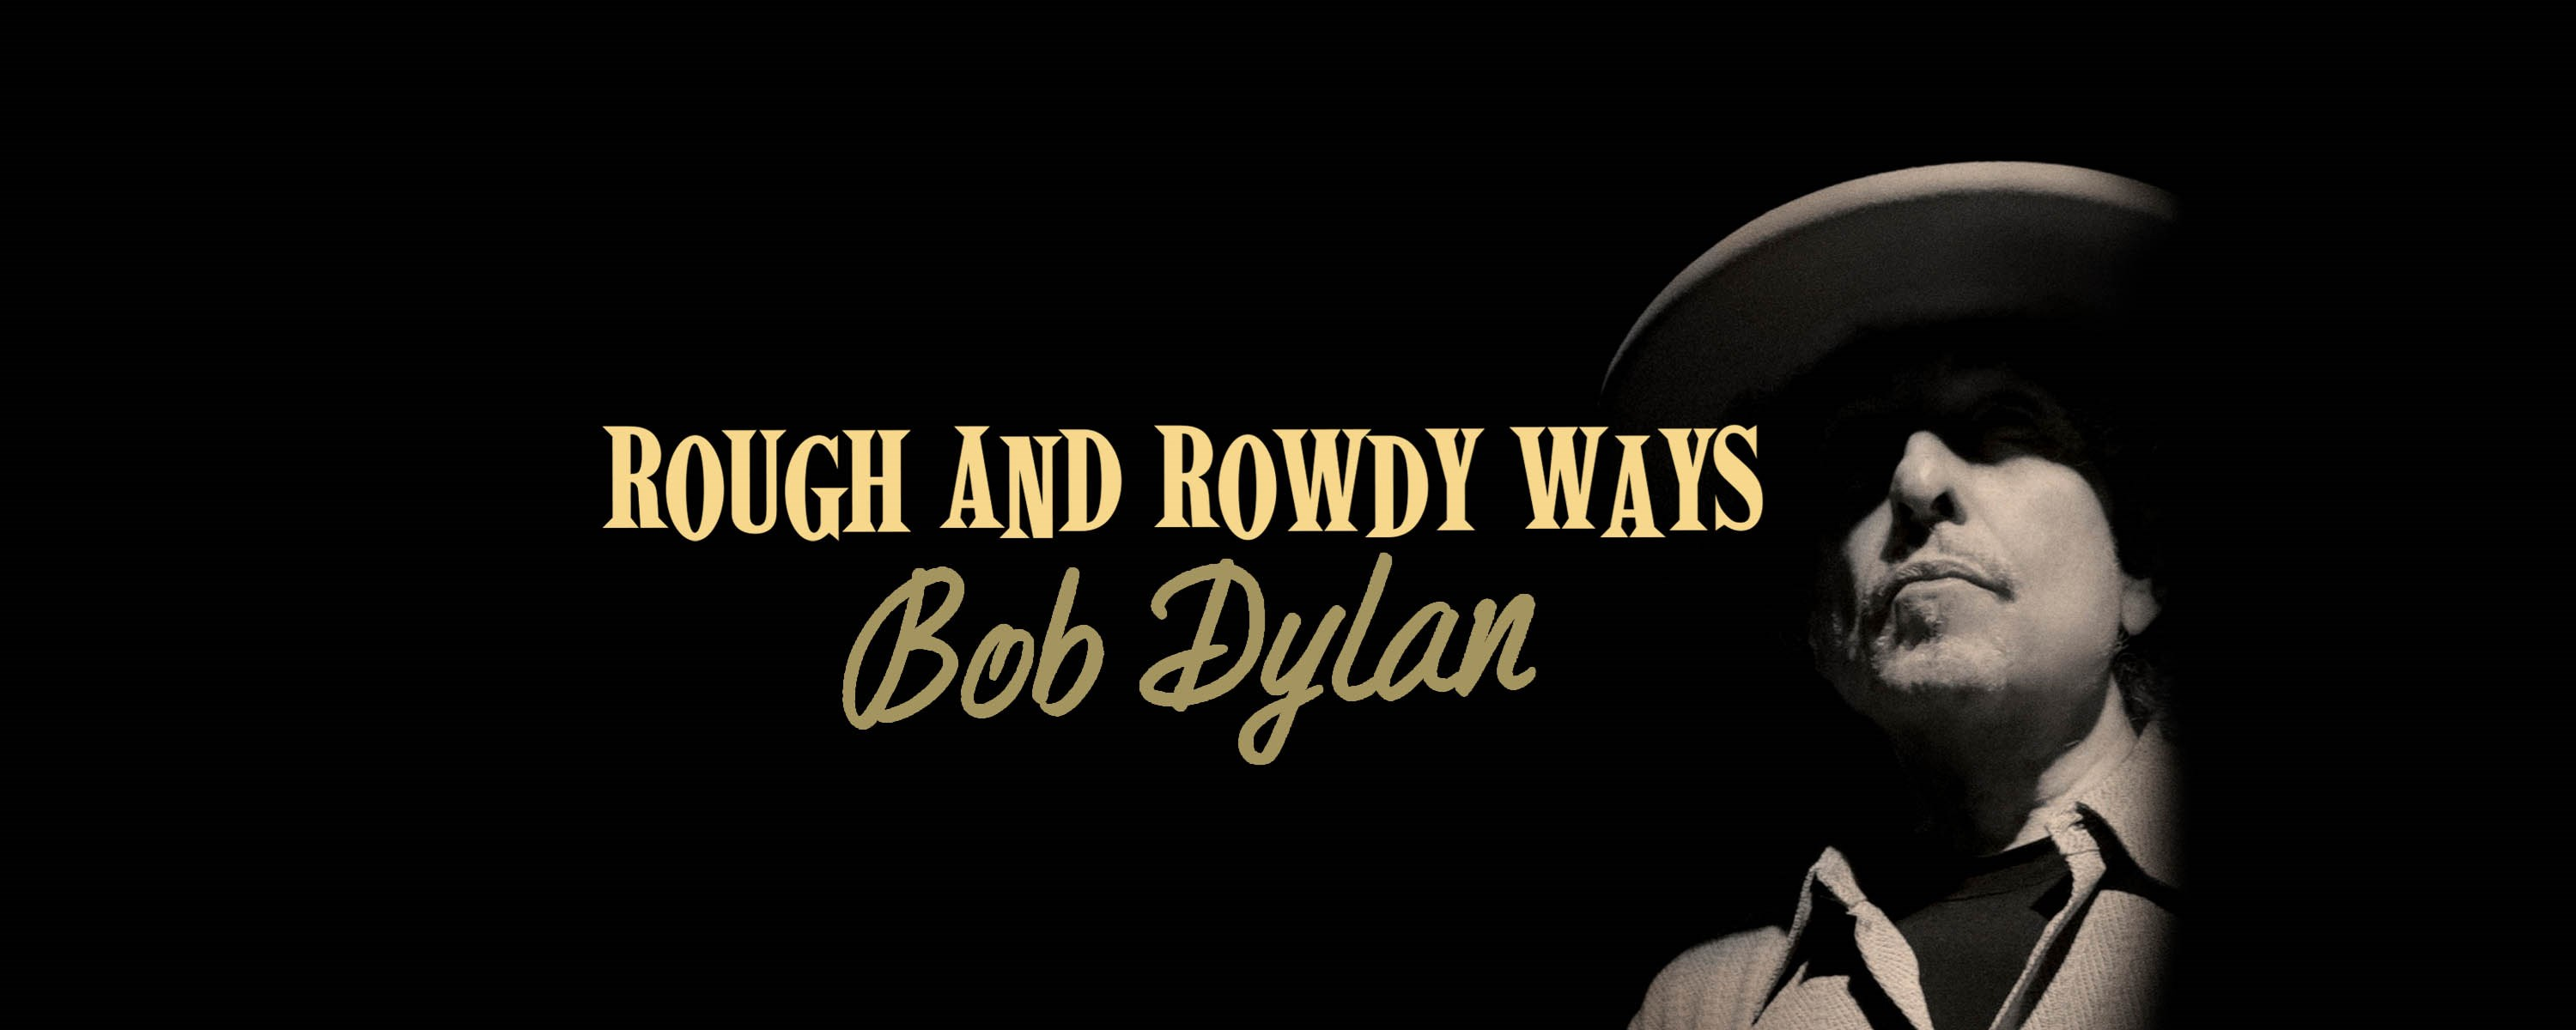 Bob Dylan no purchase necessary